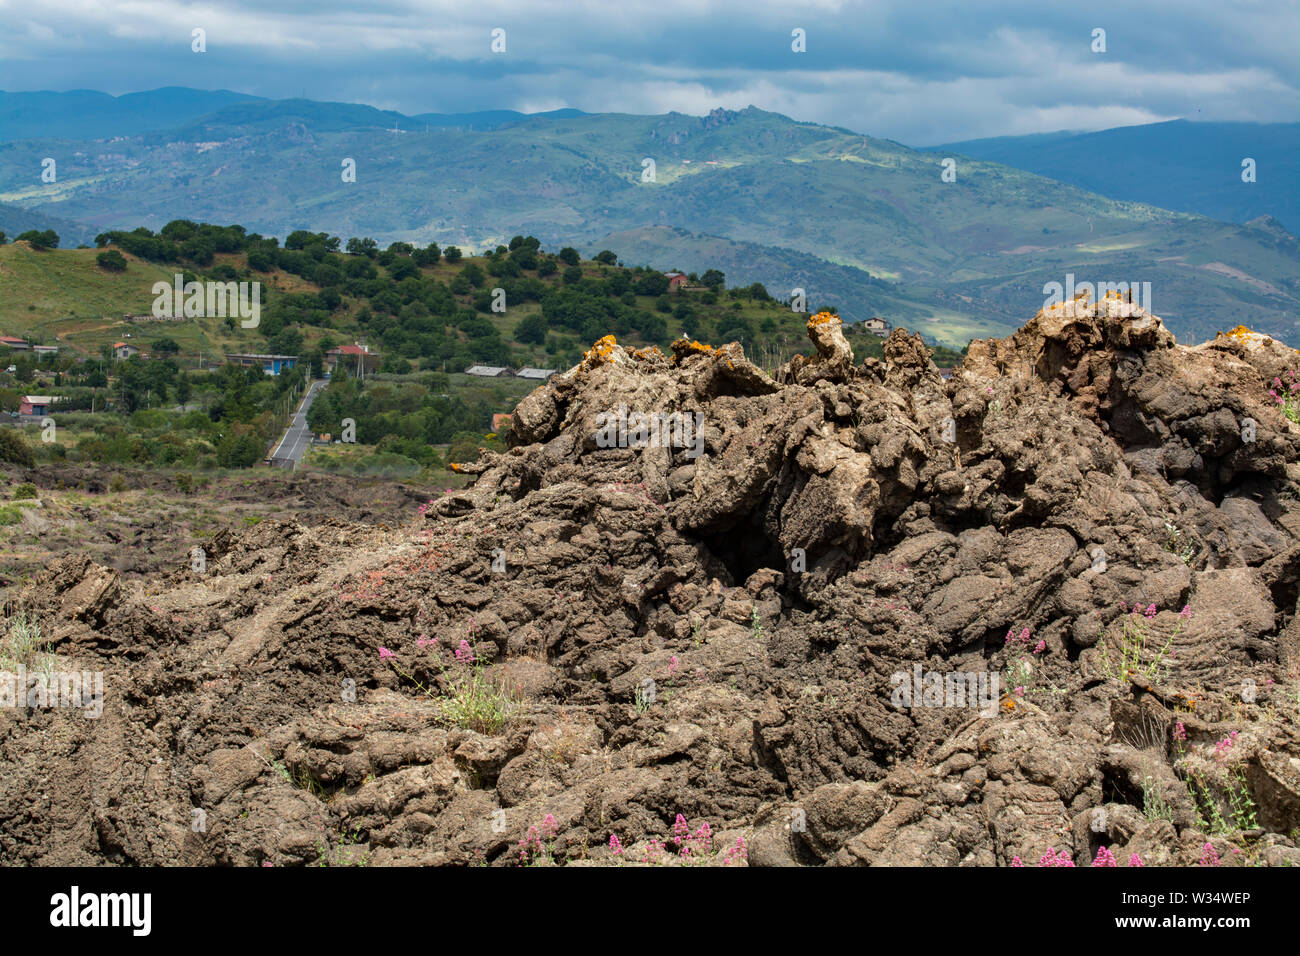 View on small village located just few meters from new eruption lava fields on slopes of Mount Etna volcano, National Park of Etna, Sicily island, Ita - Stock Image